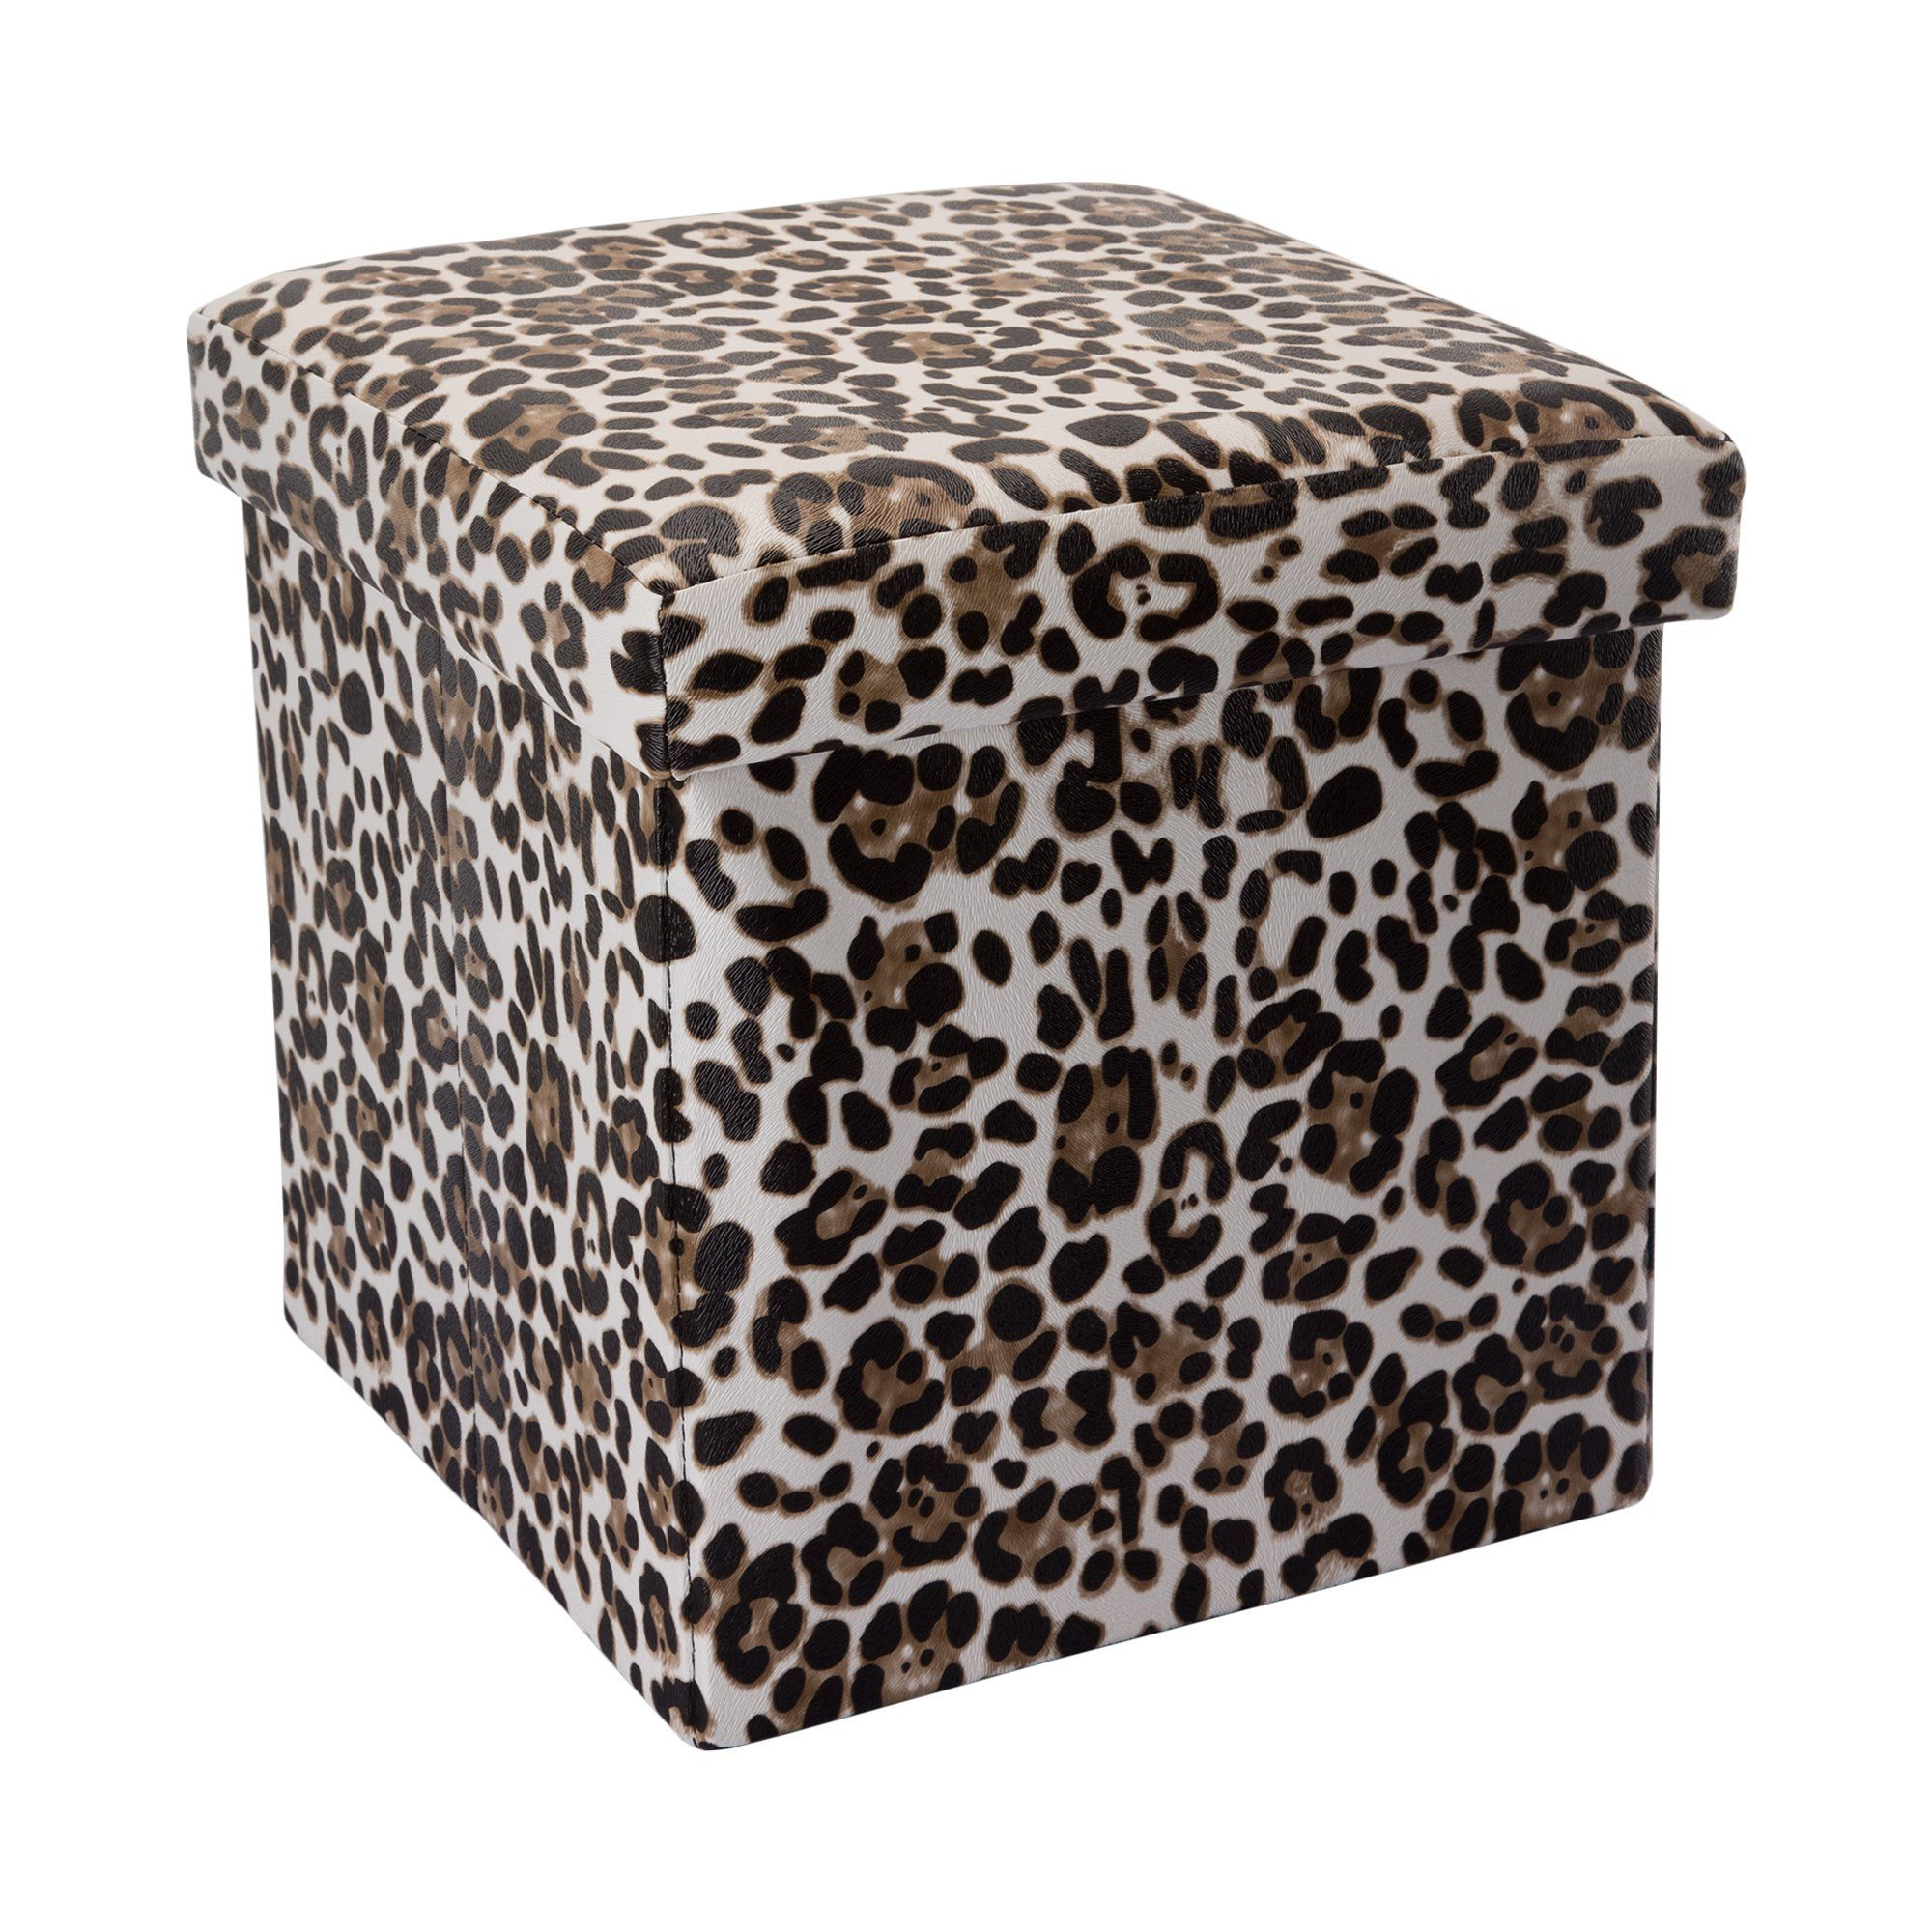 Intirilife Pouf Pliable 30x30x30 Cm En Motif Leopard Boite De Rangement Decorative En Tissu Aspect Lin Pour G In 2020 Outdoor Decor Outdoor Furniture Outdoor Ottoman